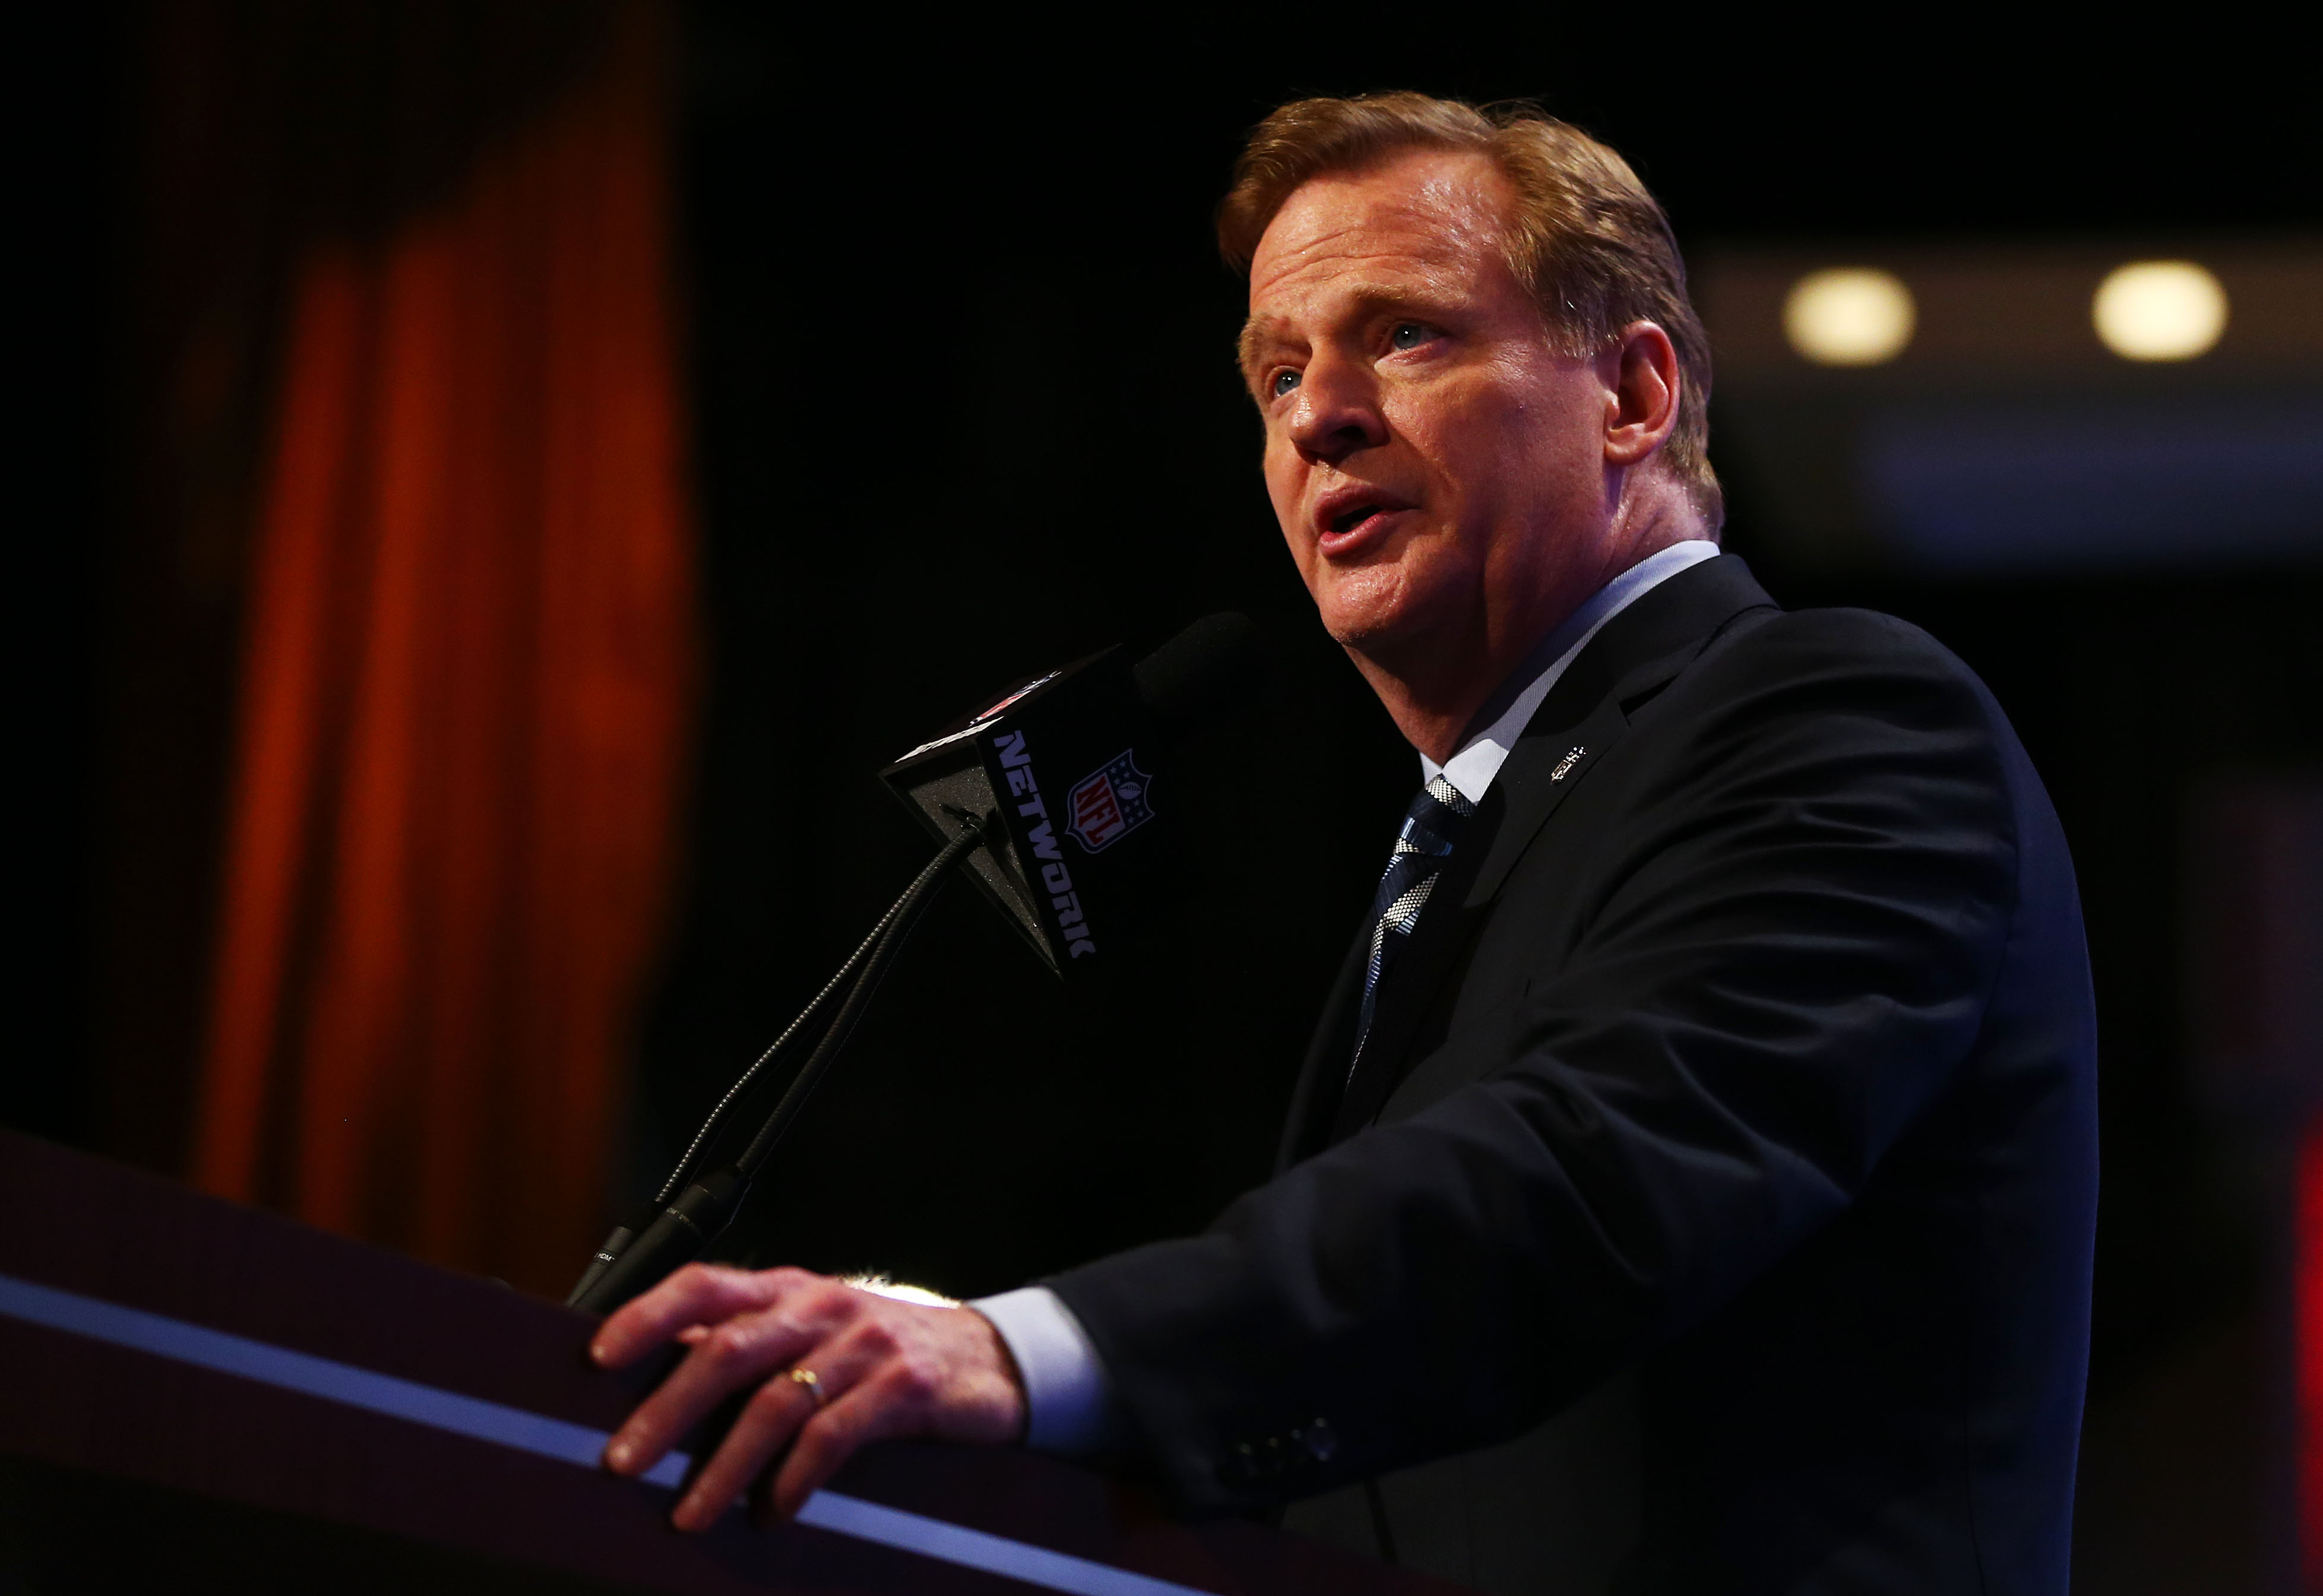 NFL Commissioner Roger Goodell, who admitted on Thursday that his punishment of Ray Race for domestic violence was too lenient, at the 2014 NFL  Draft.